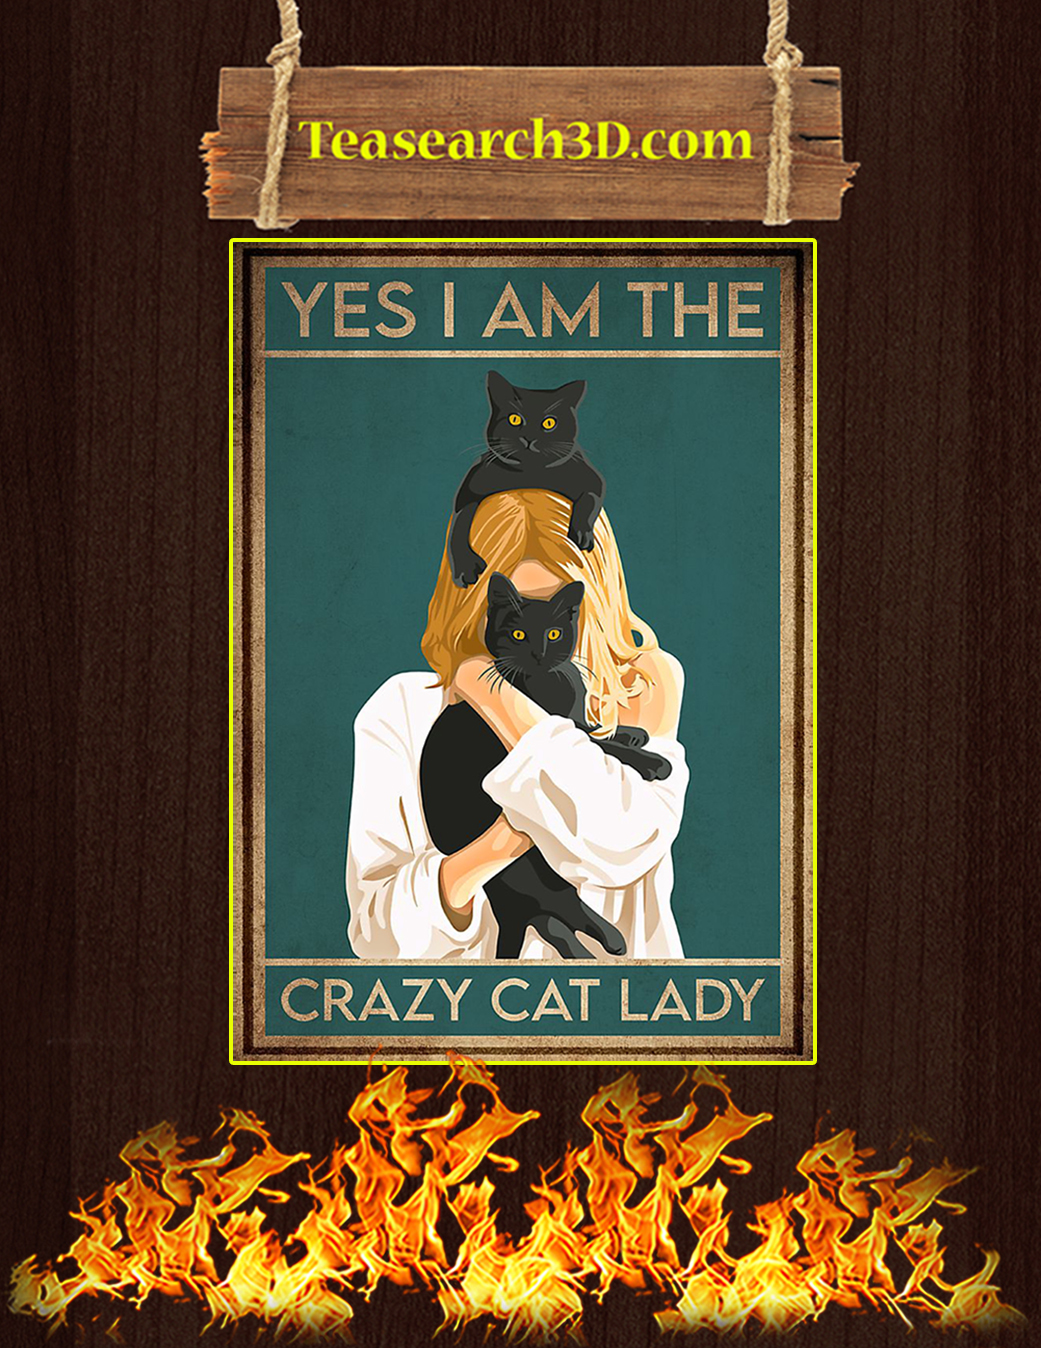 Yes I am the crazy cat lady poster A1